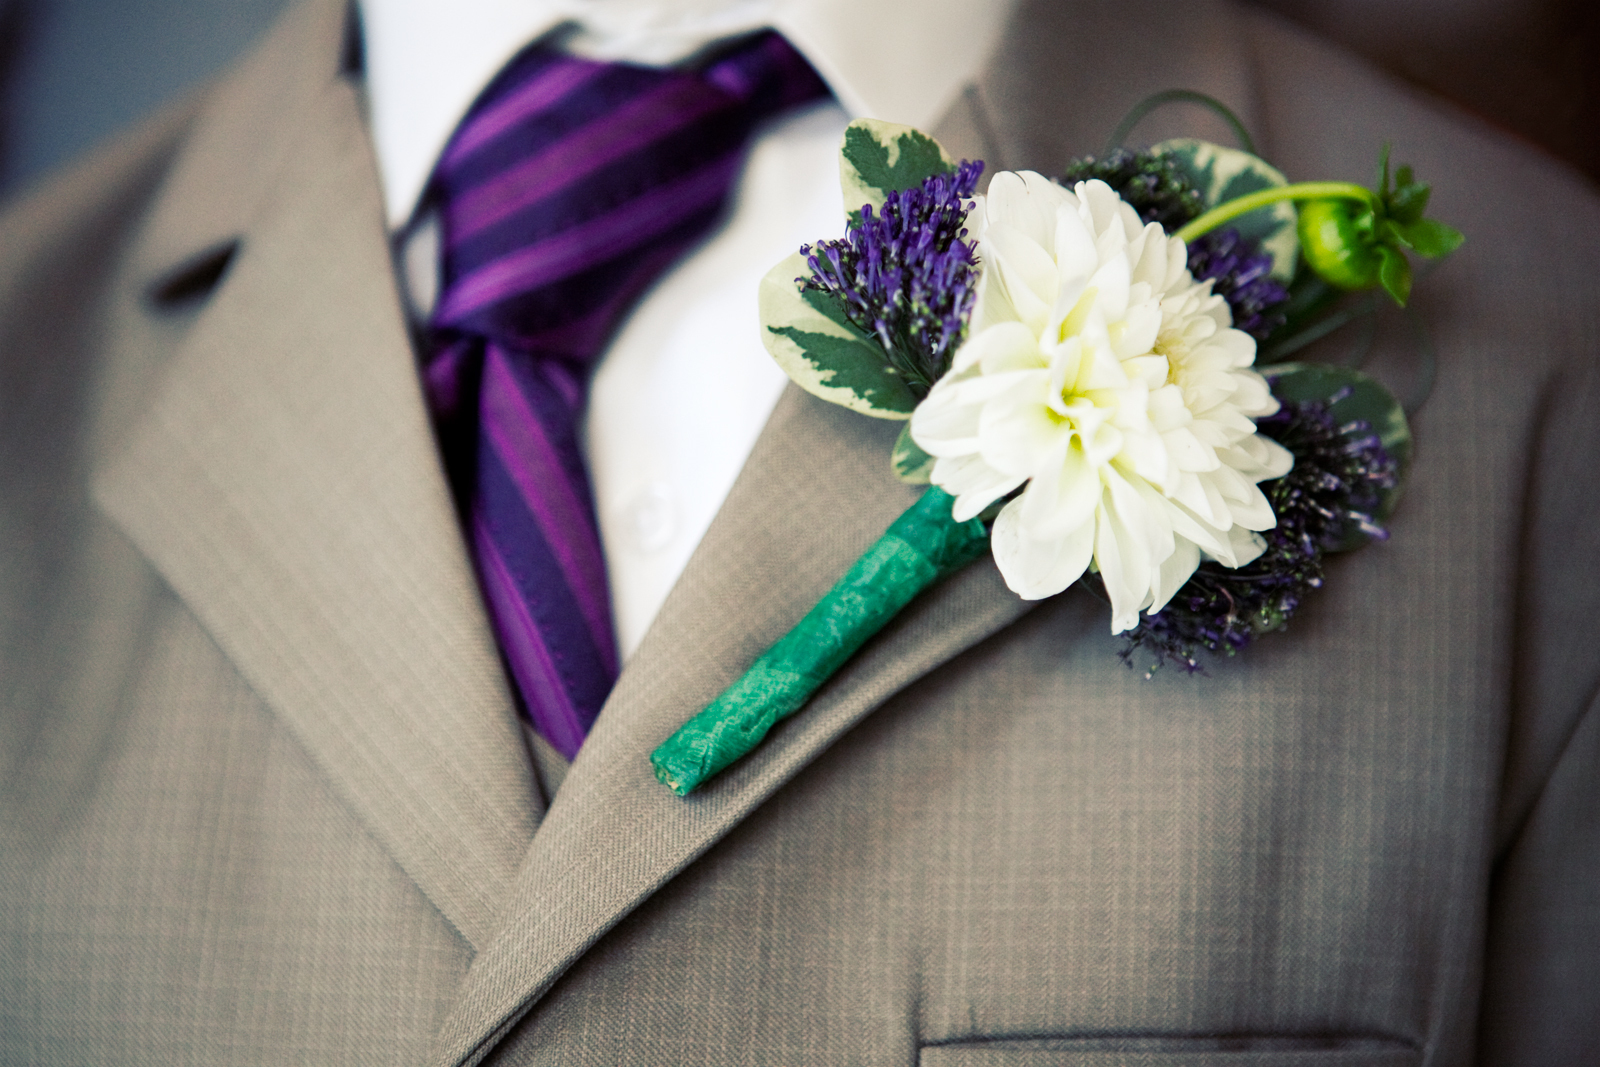 Flowers & Decor, Photography, Boutonnieres, Flower, Wedding, Tie, Detail, Fun, Unique, Groomsman, Photographer, Photos, Boutineer, Boston, Funky, The studio noir